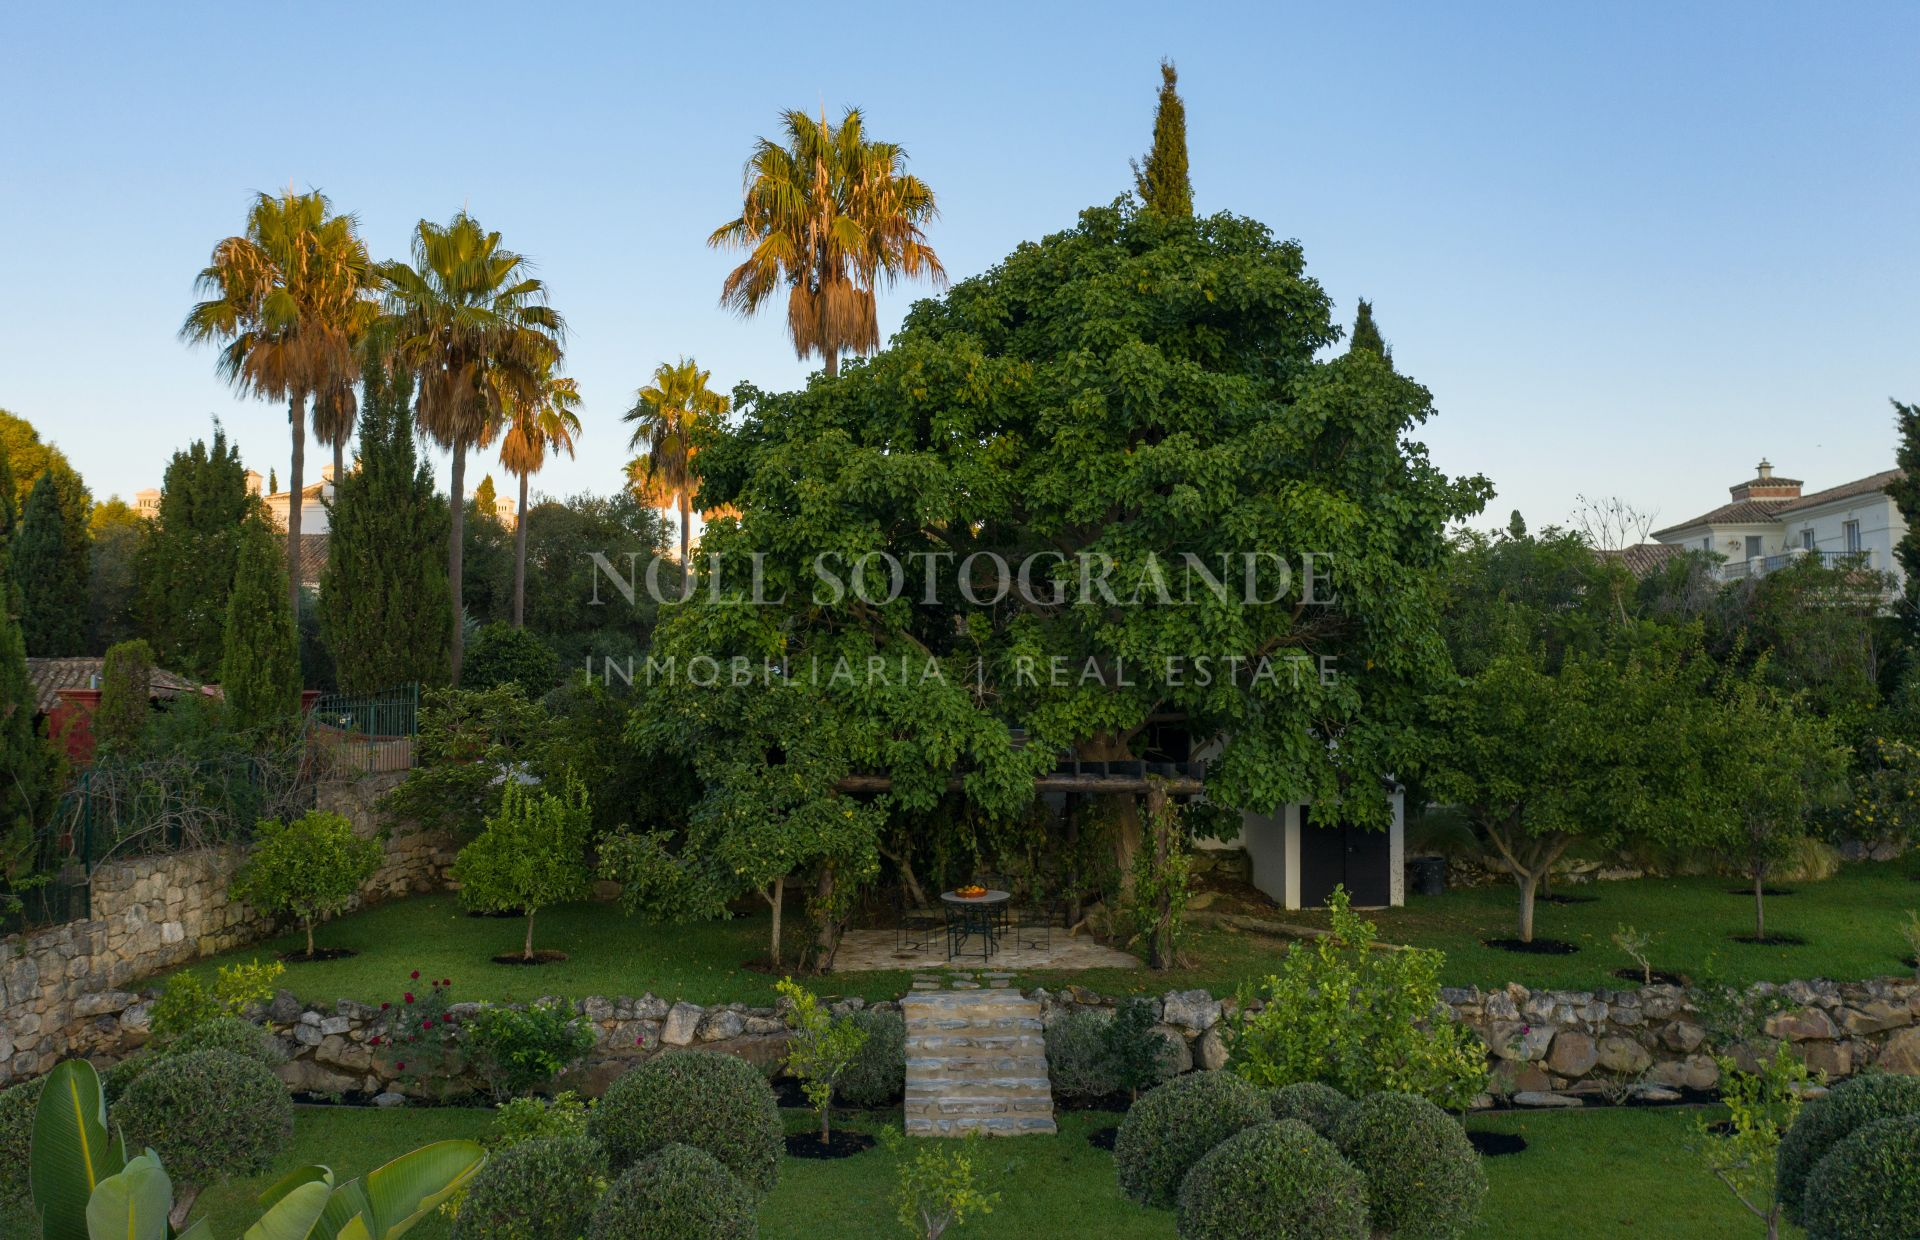 Casa Agosto Sotogrande, Luxury Villa for sale